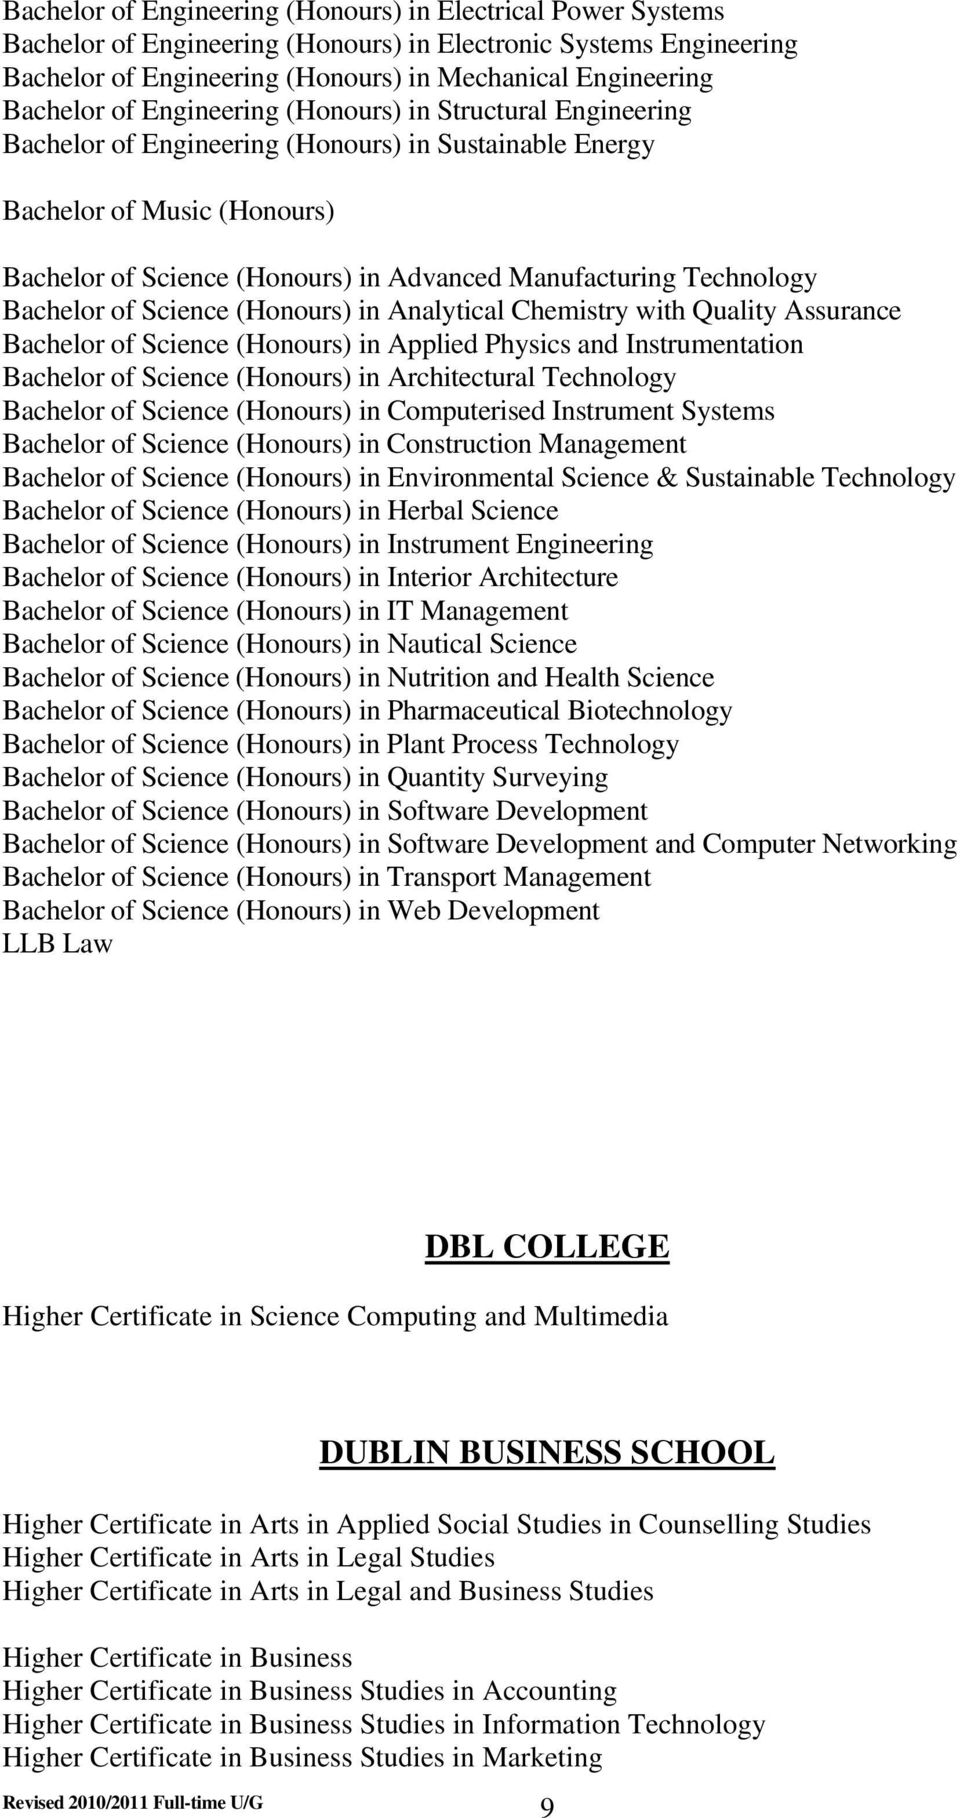 Technology Bachelor of Science (Honours) in Analytical Chemistry with Quality Assurance Bachelor of Science (Honours) in Applied Physics and Instrumentation Bachelor of Science (Honours) in